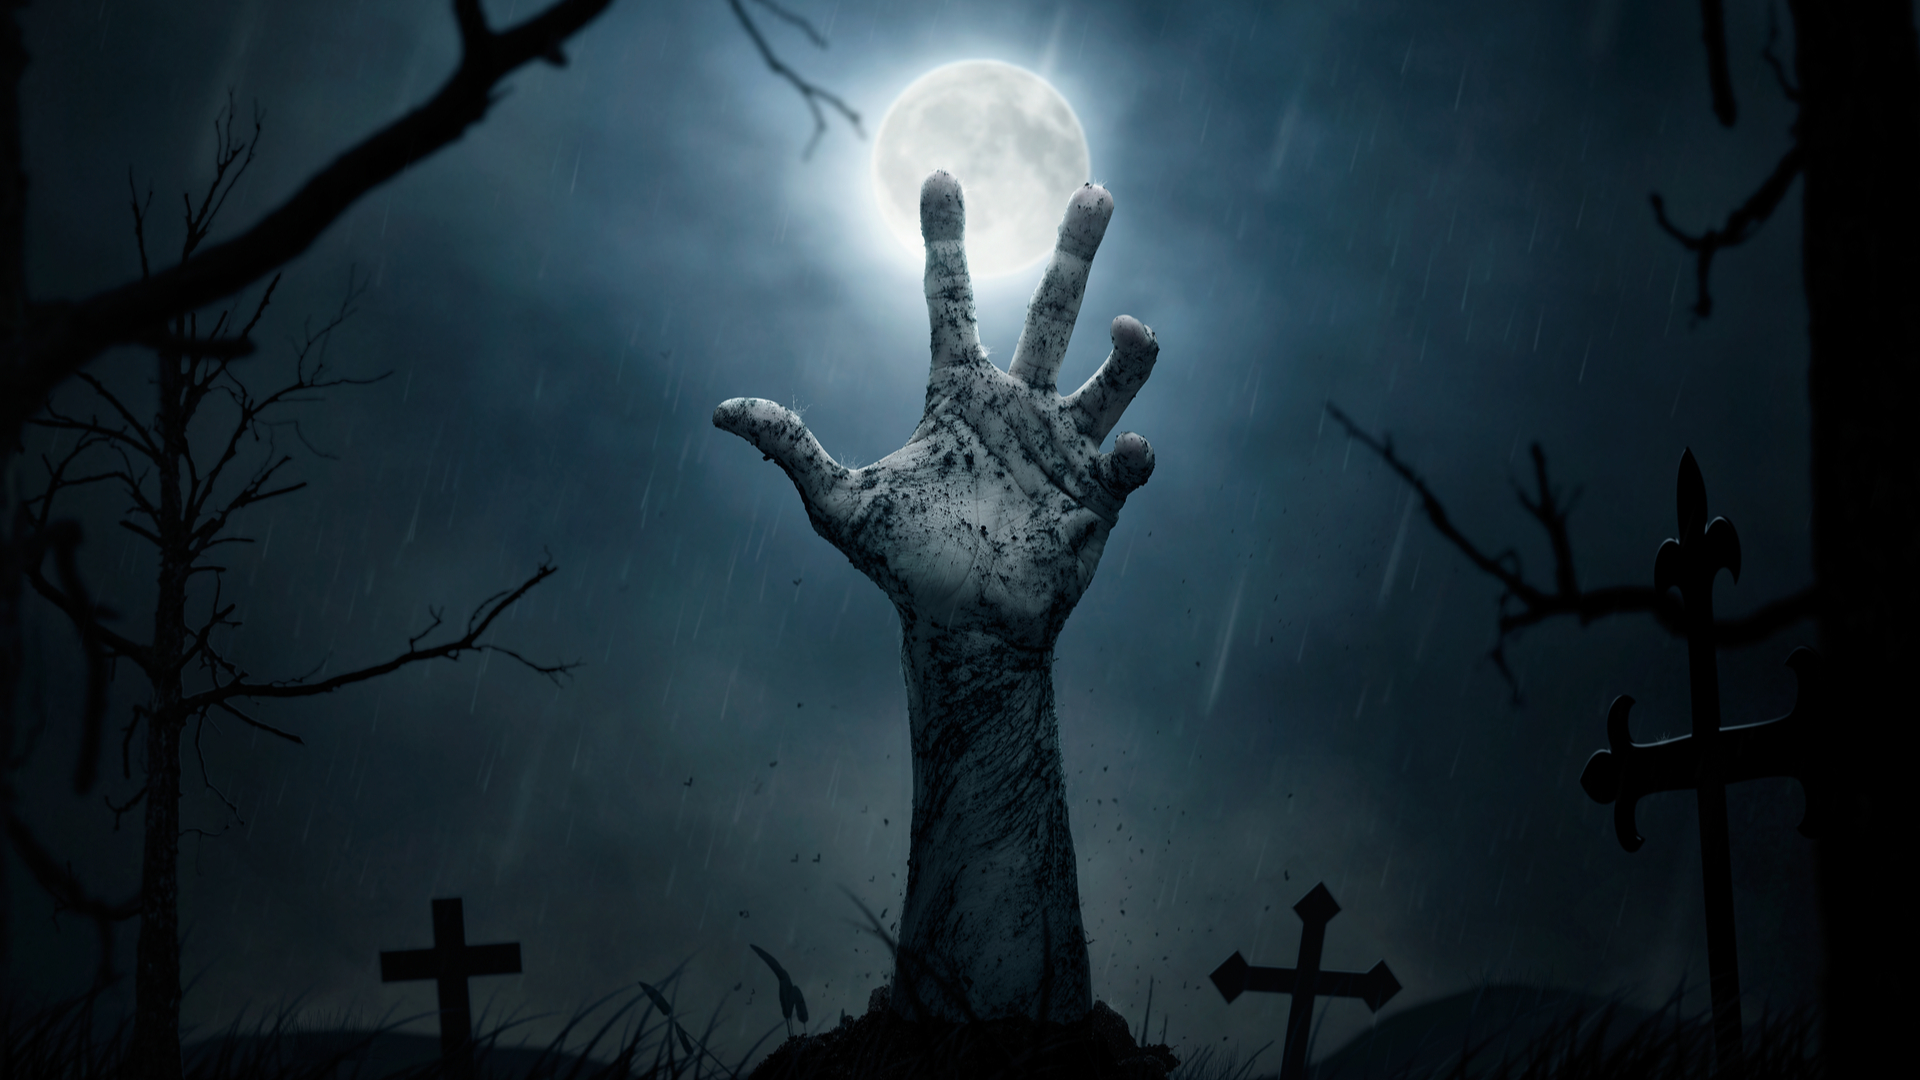 Zombie hand revived from cemetary